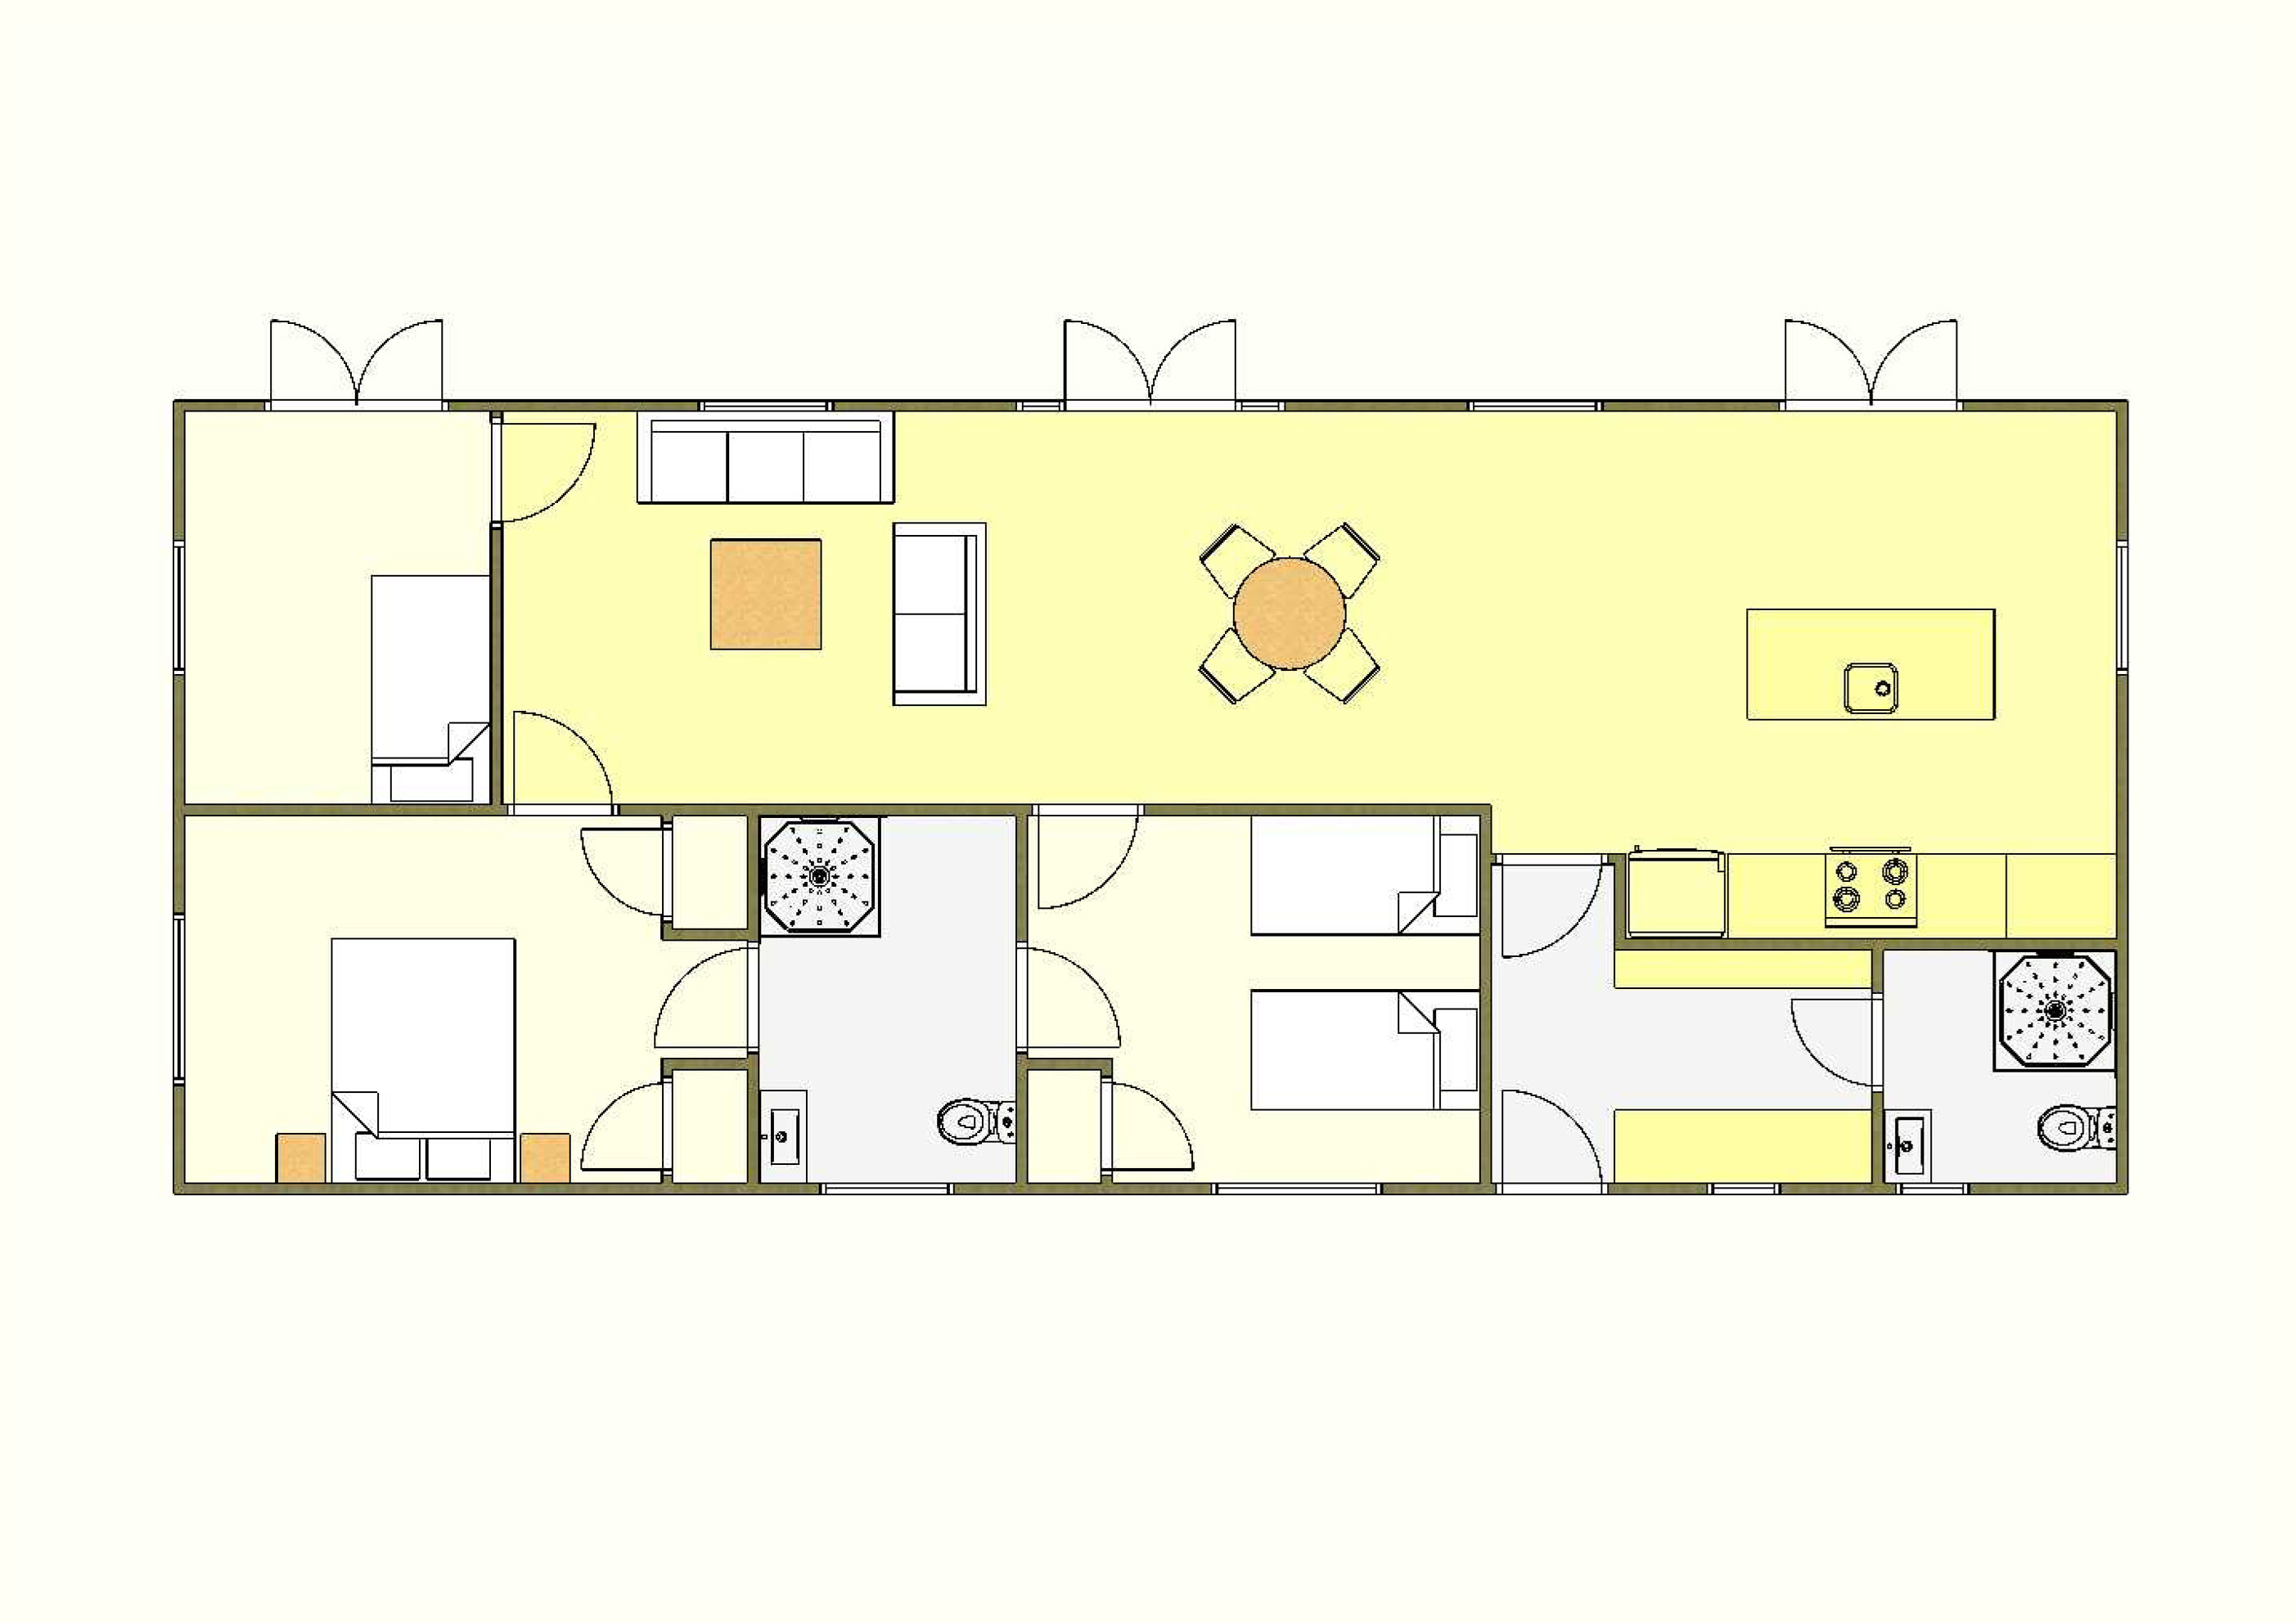 DW3 - 3 Bedroom